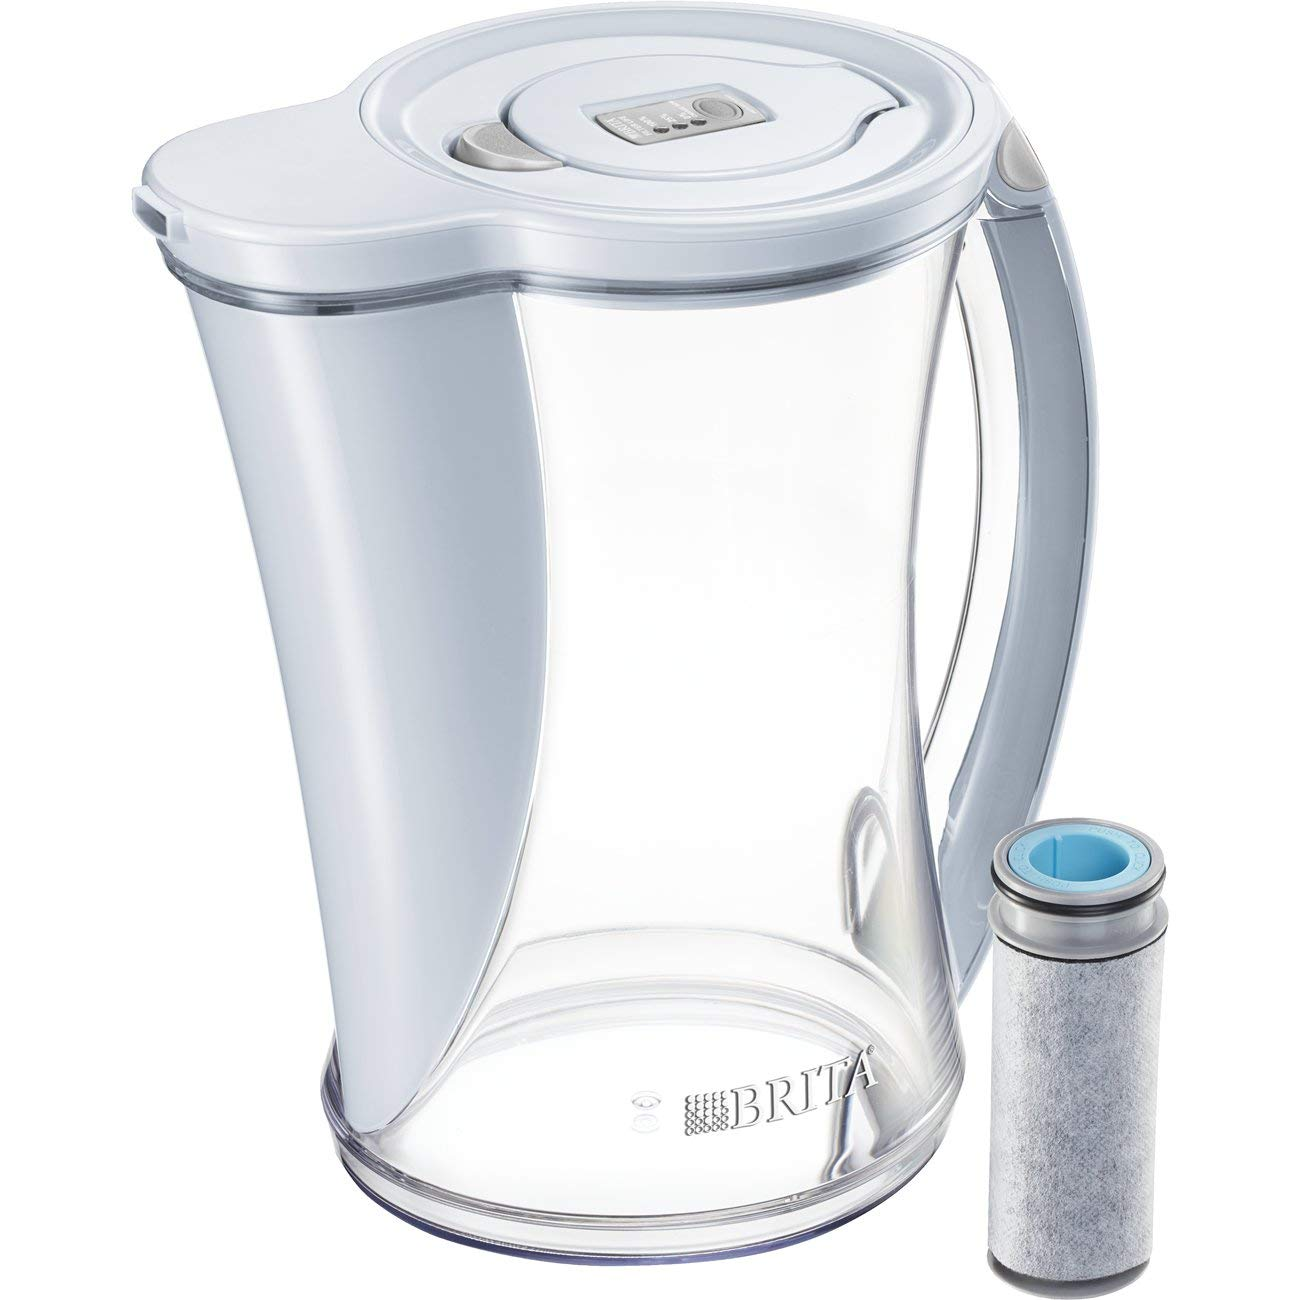 Brita 60258362855 Filtered Water Pitcher, 12 cup, Ice